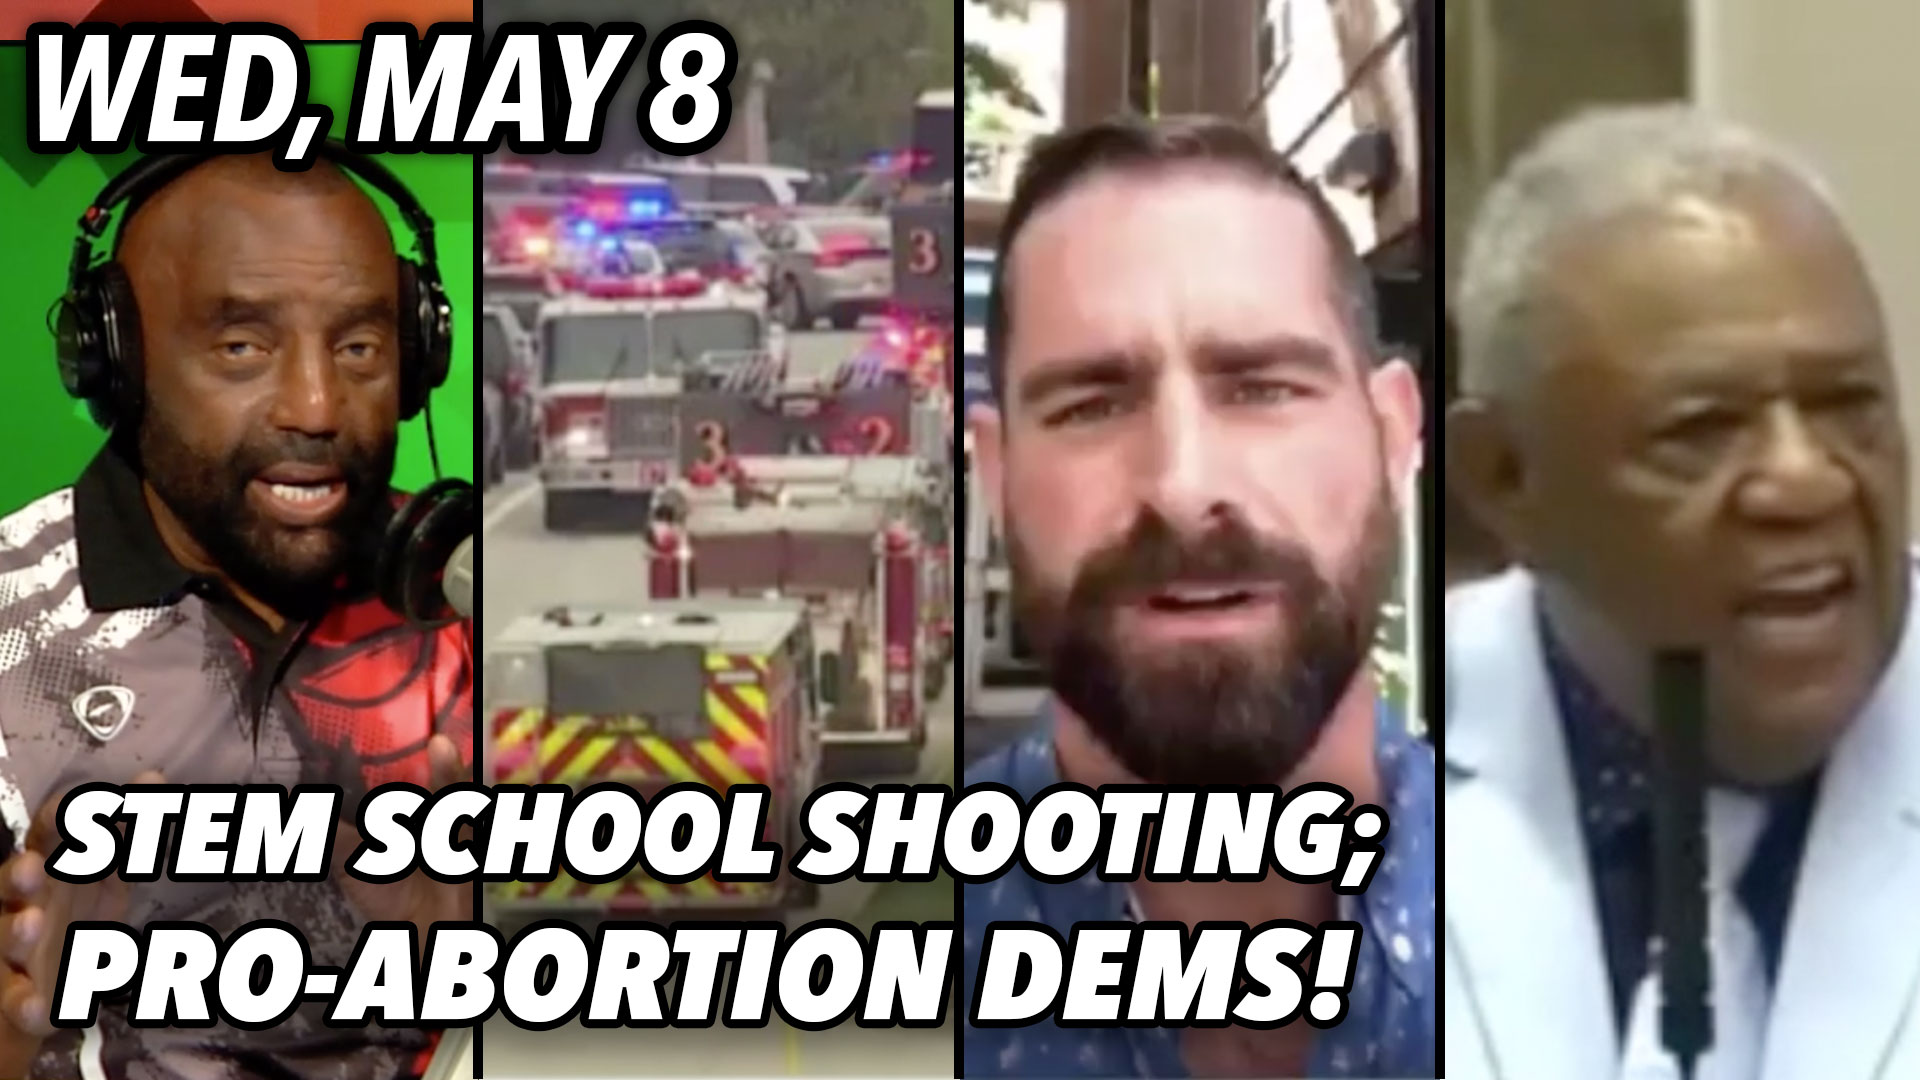 Thumbnail from The Jesse Lee Peterson Show,  Weds., May 8, 2019